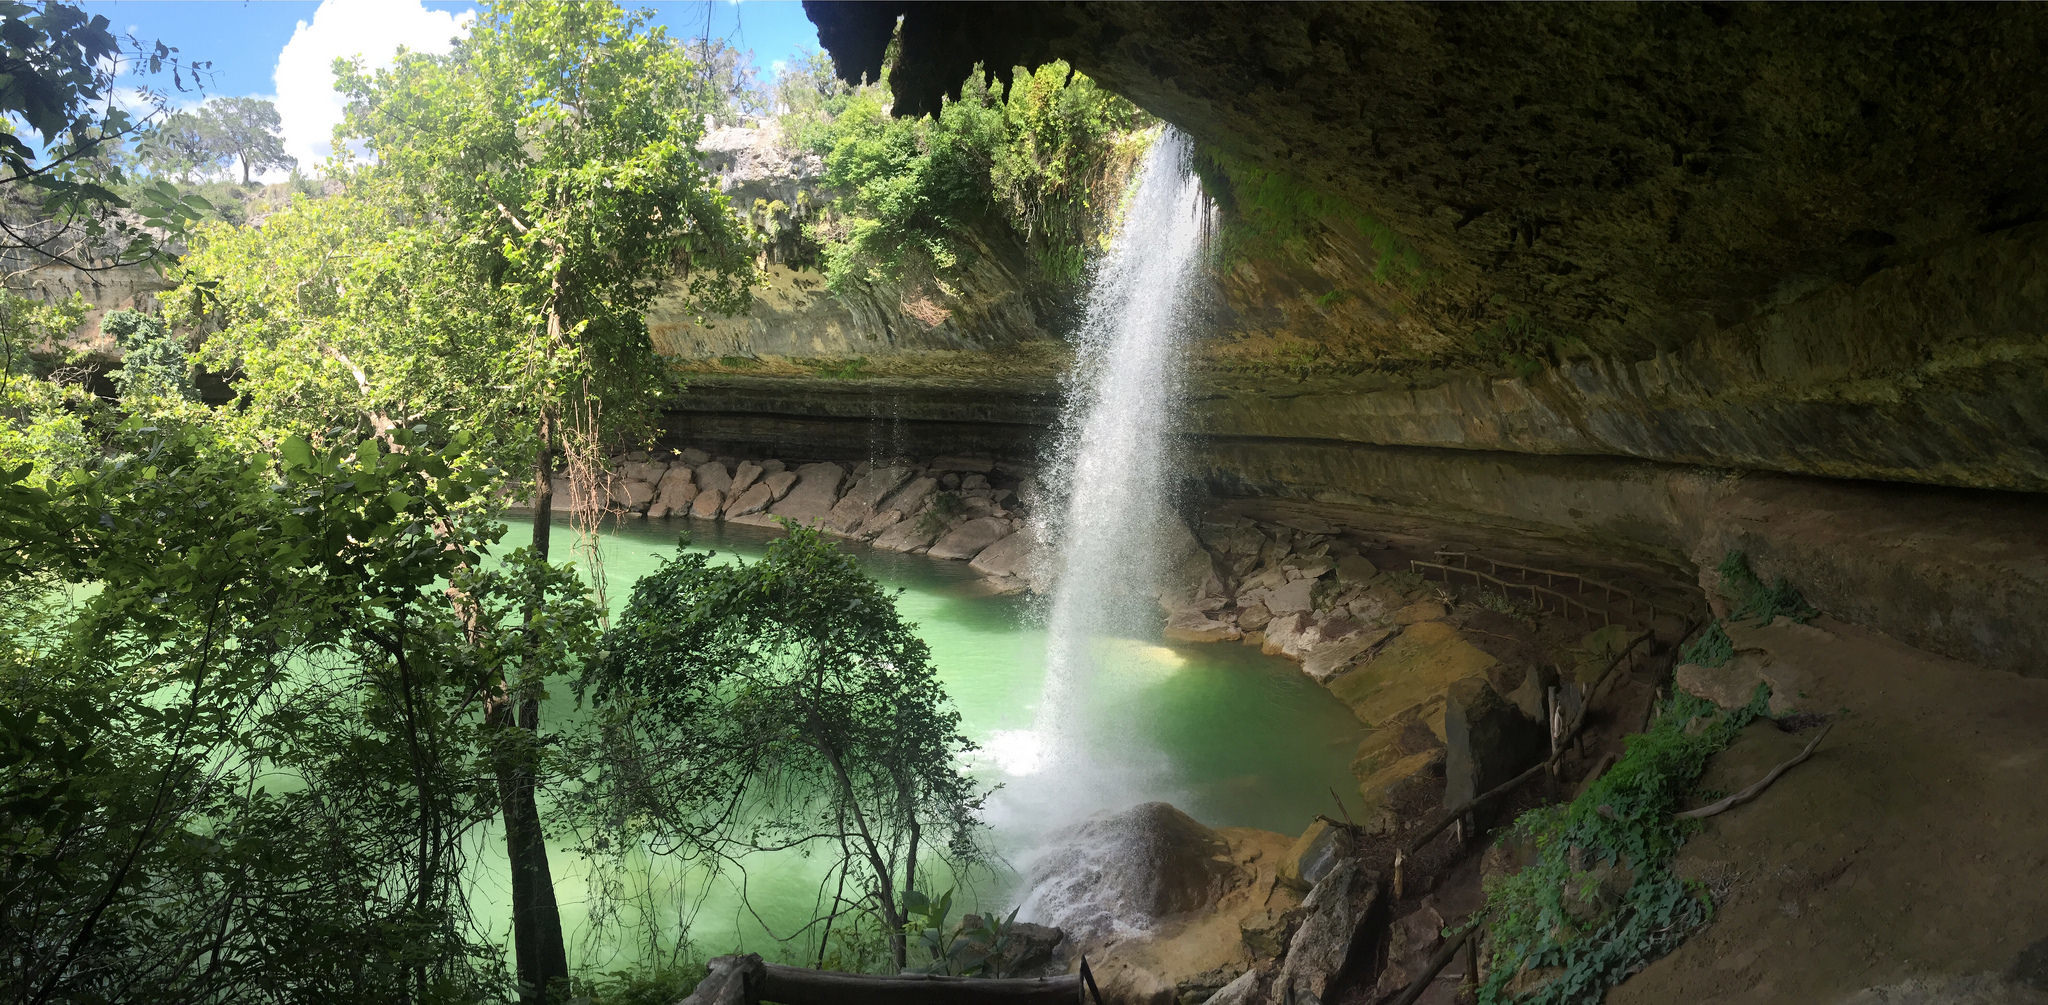 hamilton pool - highlight of austin, texas